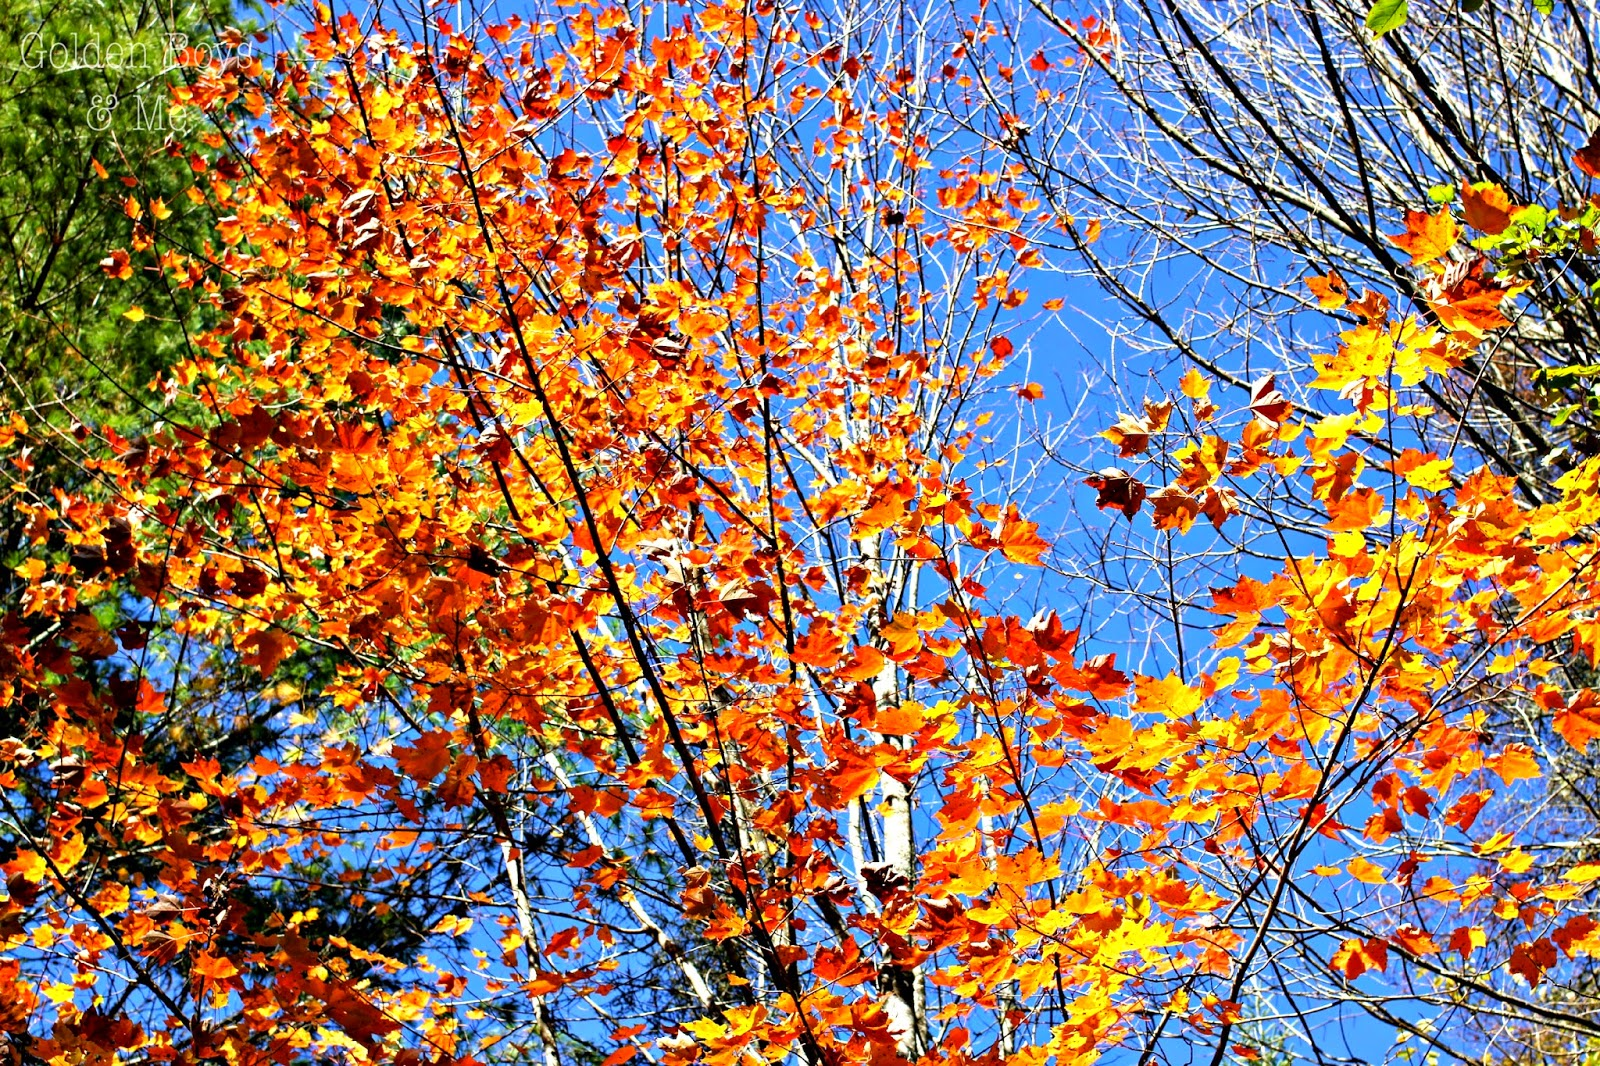 Orange fall leaves with blue sky-www.goldenboysandme.com